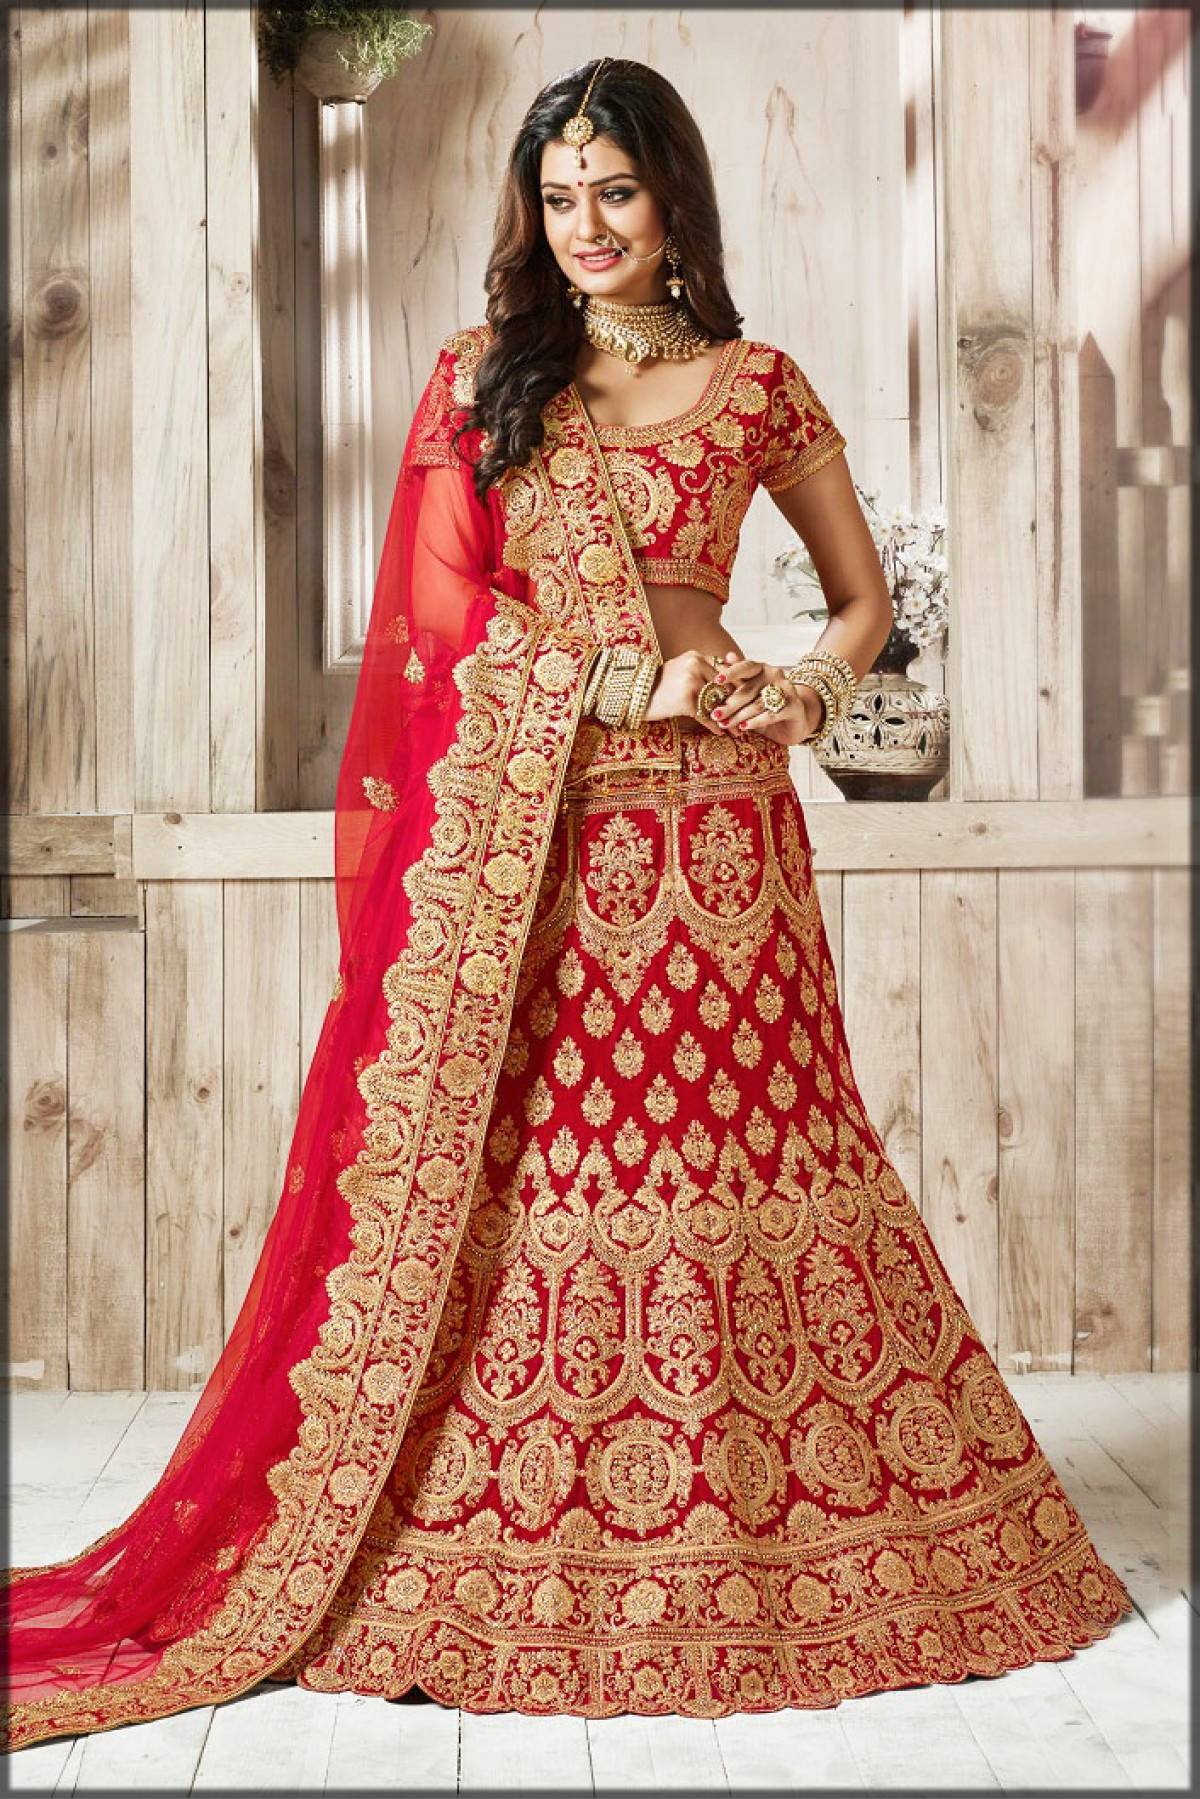 velvet lehenga choli in red and golden color